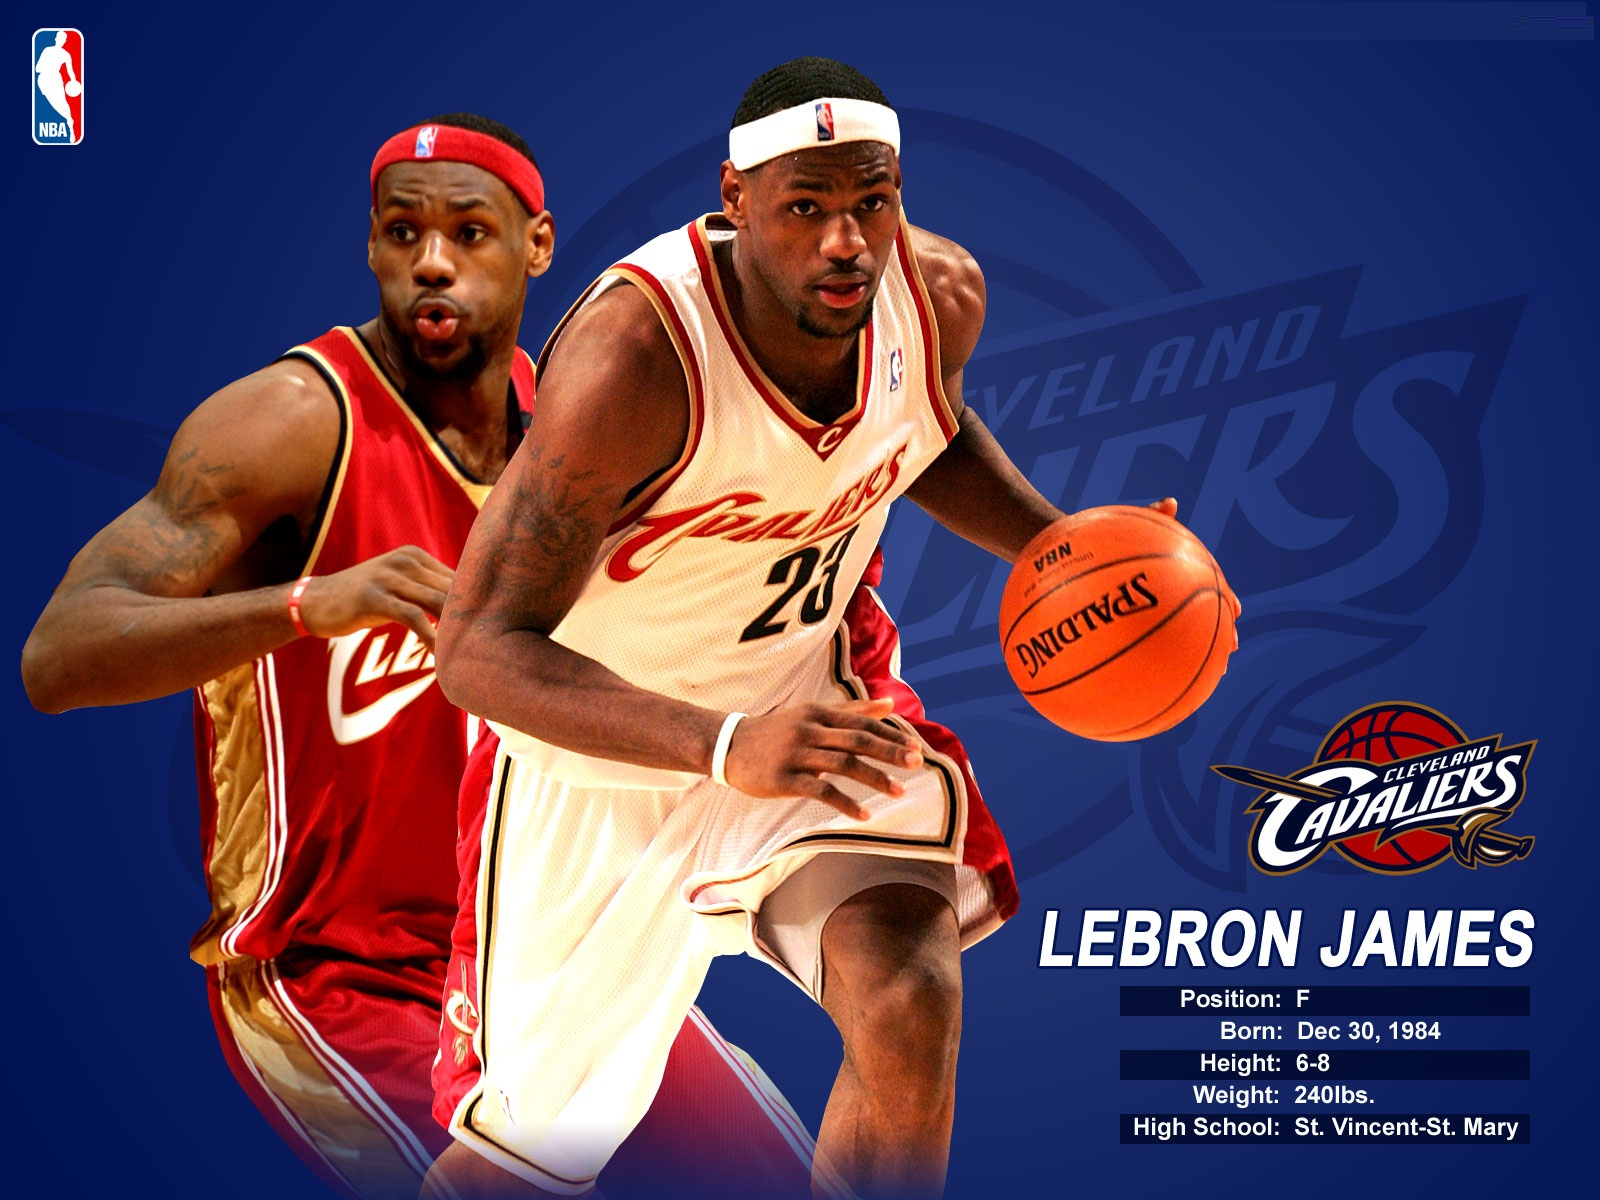 nba desktop backgrounds nba desktop backgrounds Desktop 1600x1200